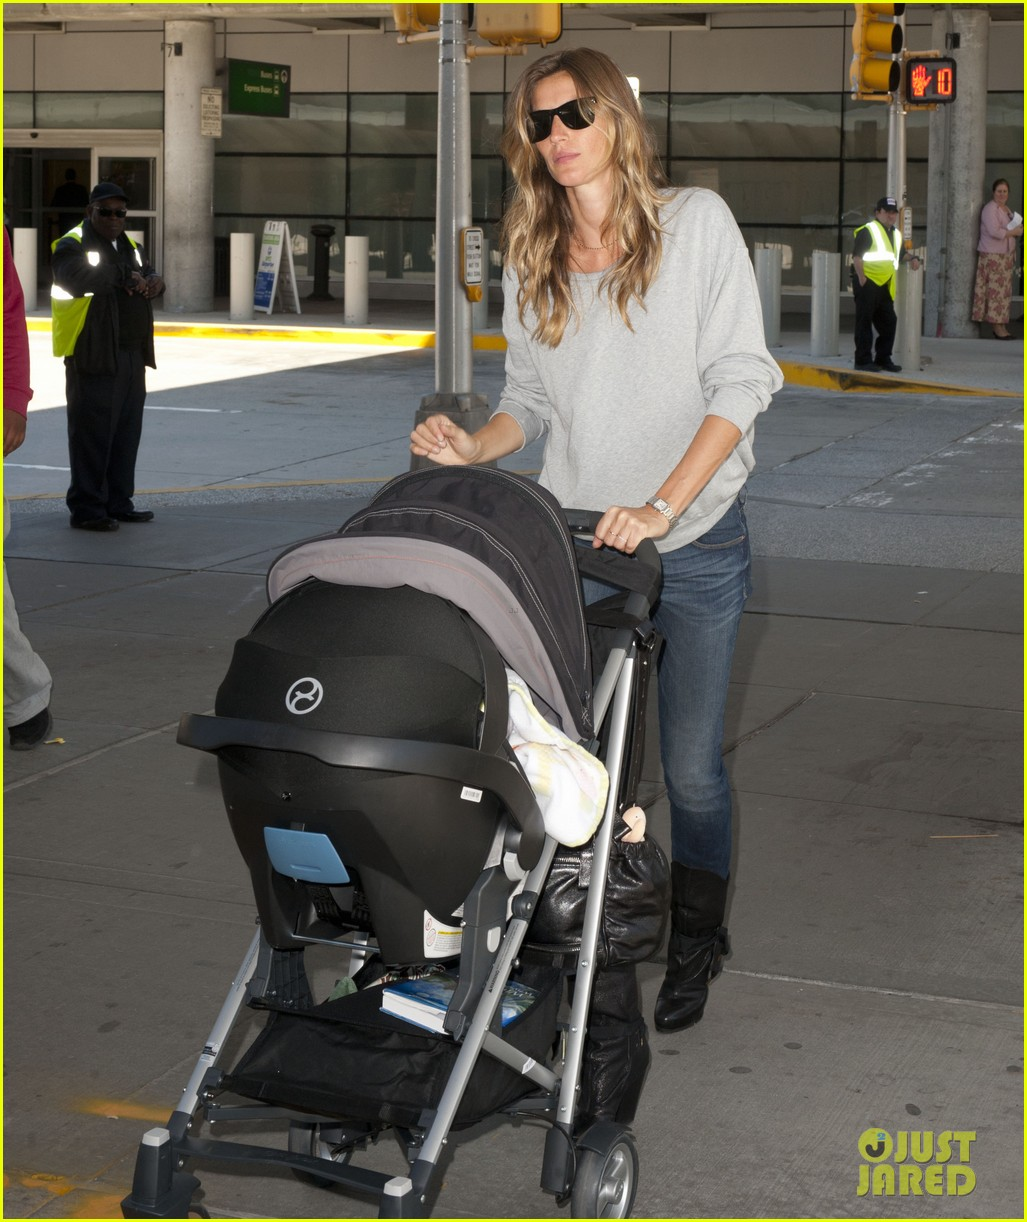 gisele bundchen vivian fly to nyc after hm campaign news 052862447